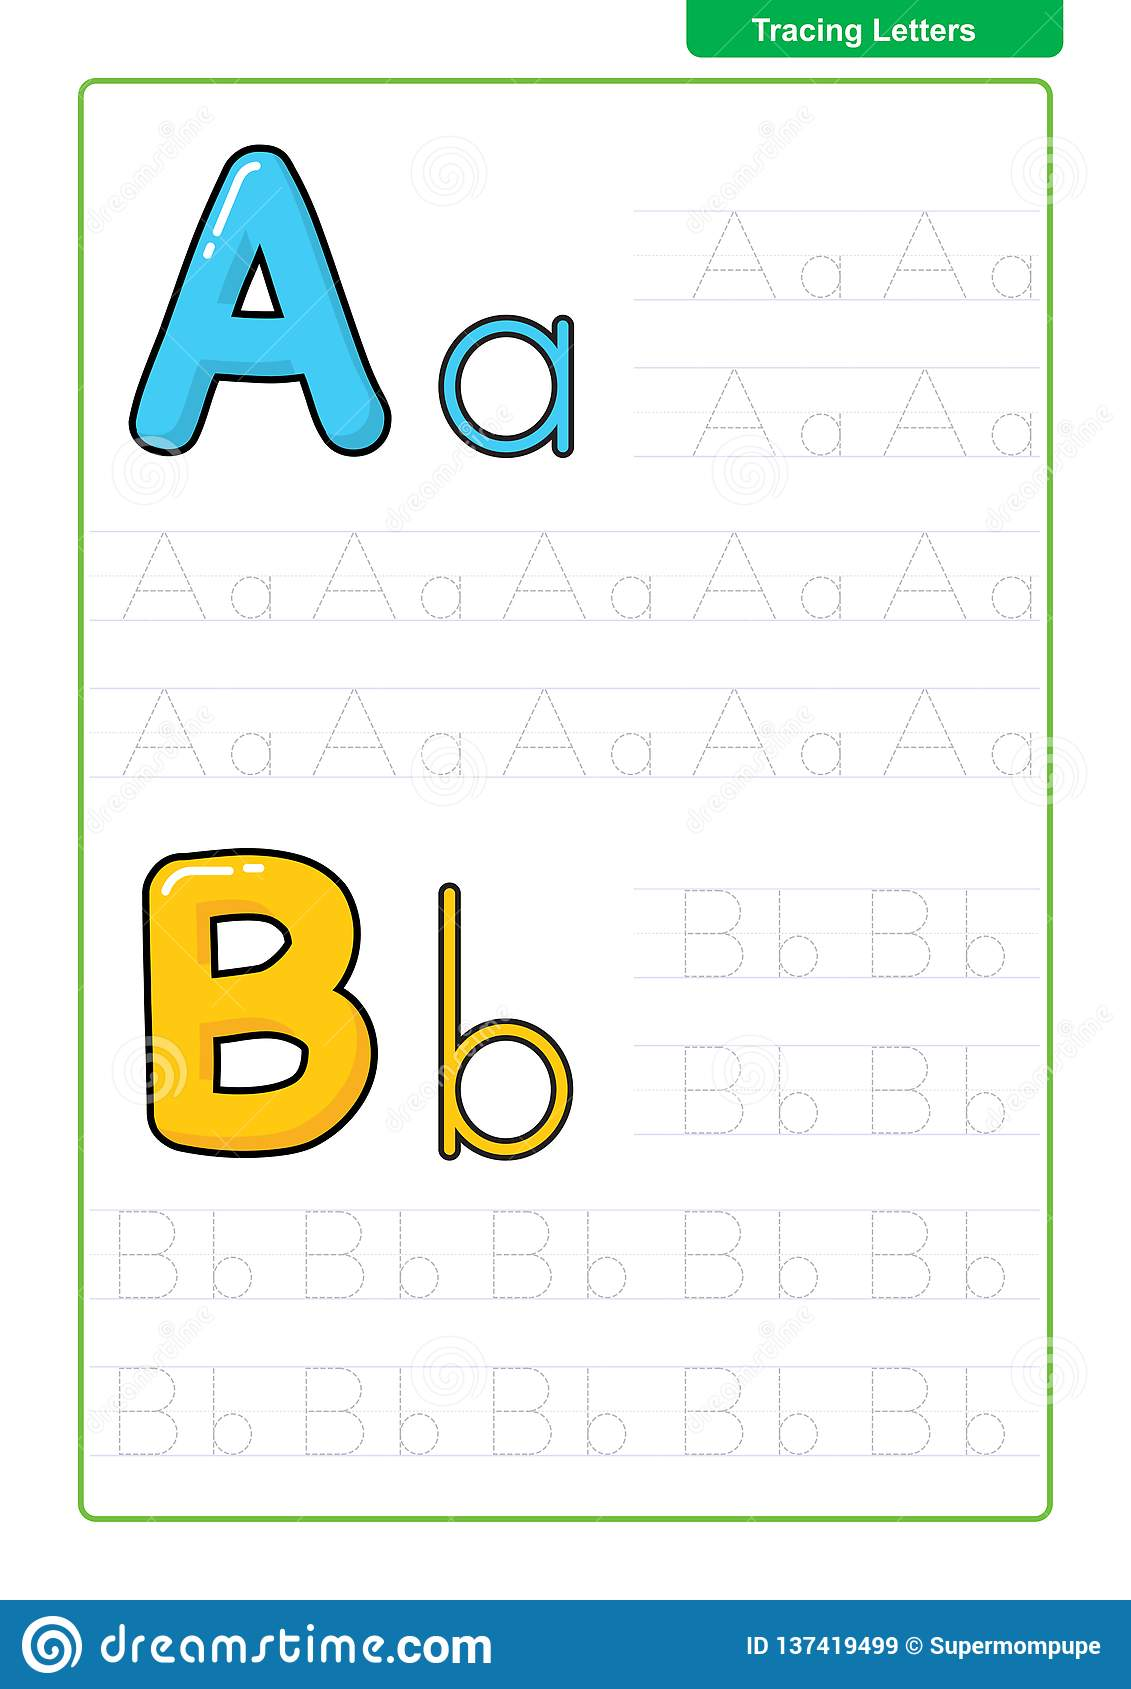 hight resolution of ABC Alphabet Letters Tracing Worksheet With Alphabet Letters. Basic Writing  Practice For Kindergarten Kids A4 Paper Ready To Print Stock Vector -  Illustration of alphabet